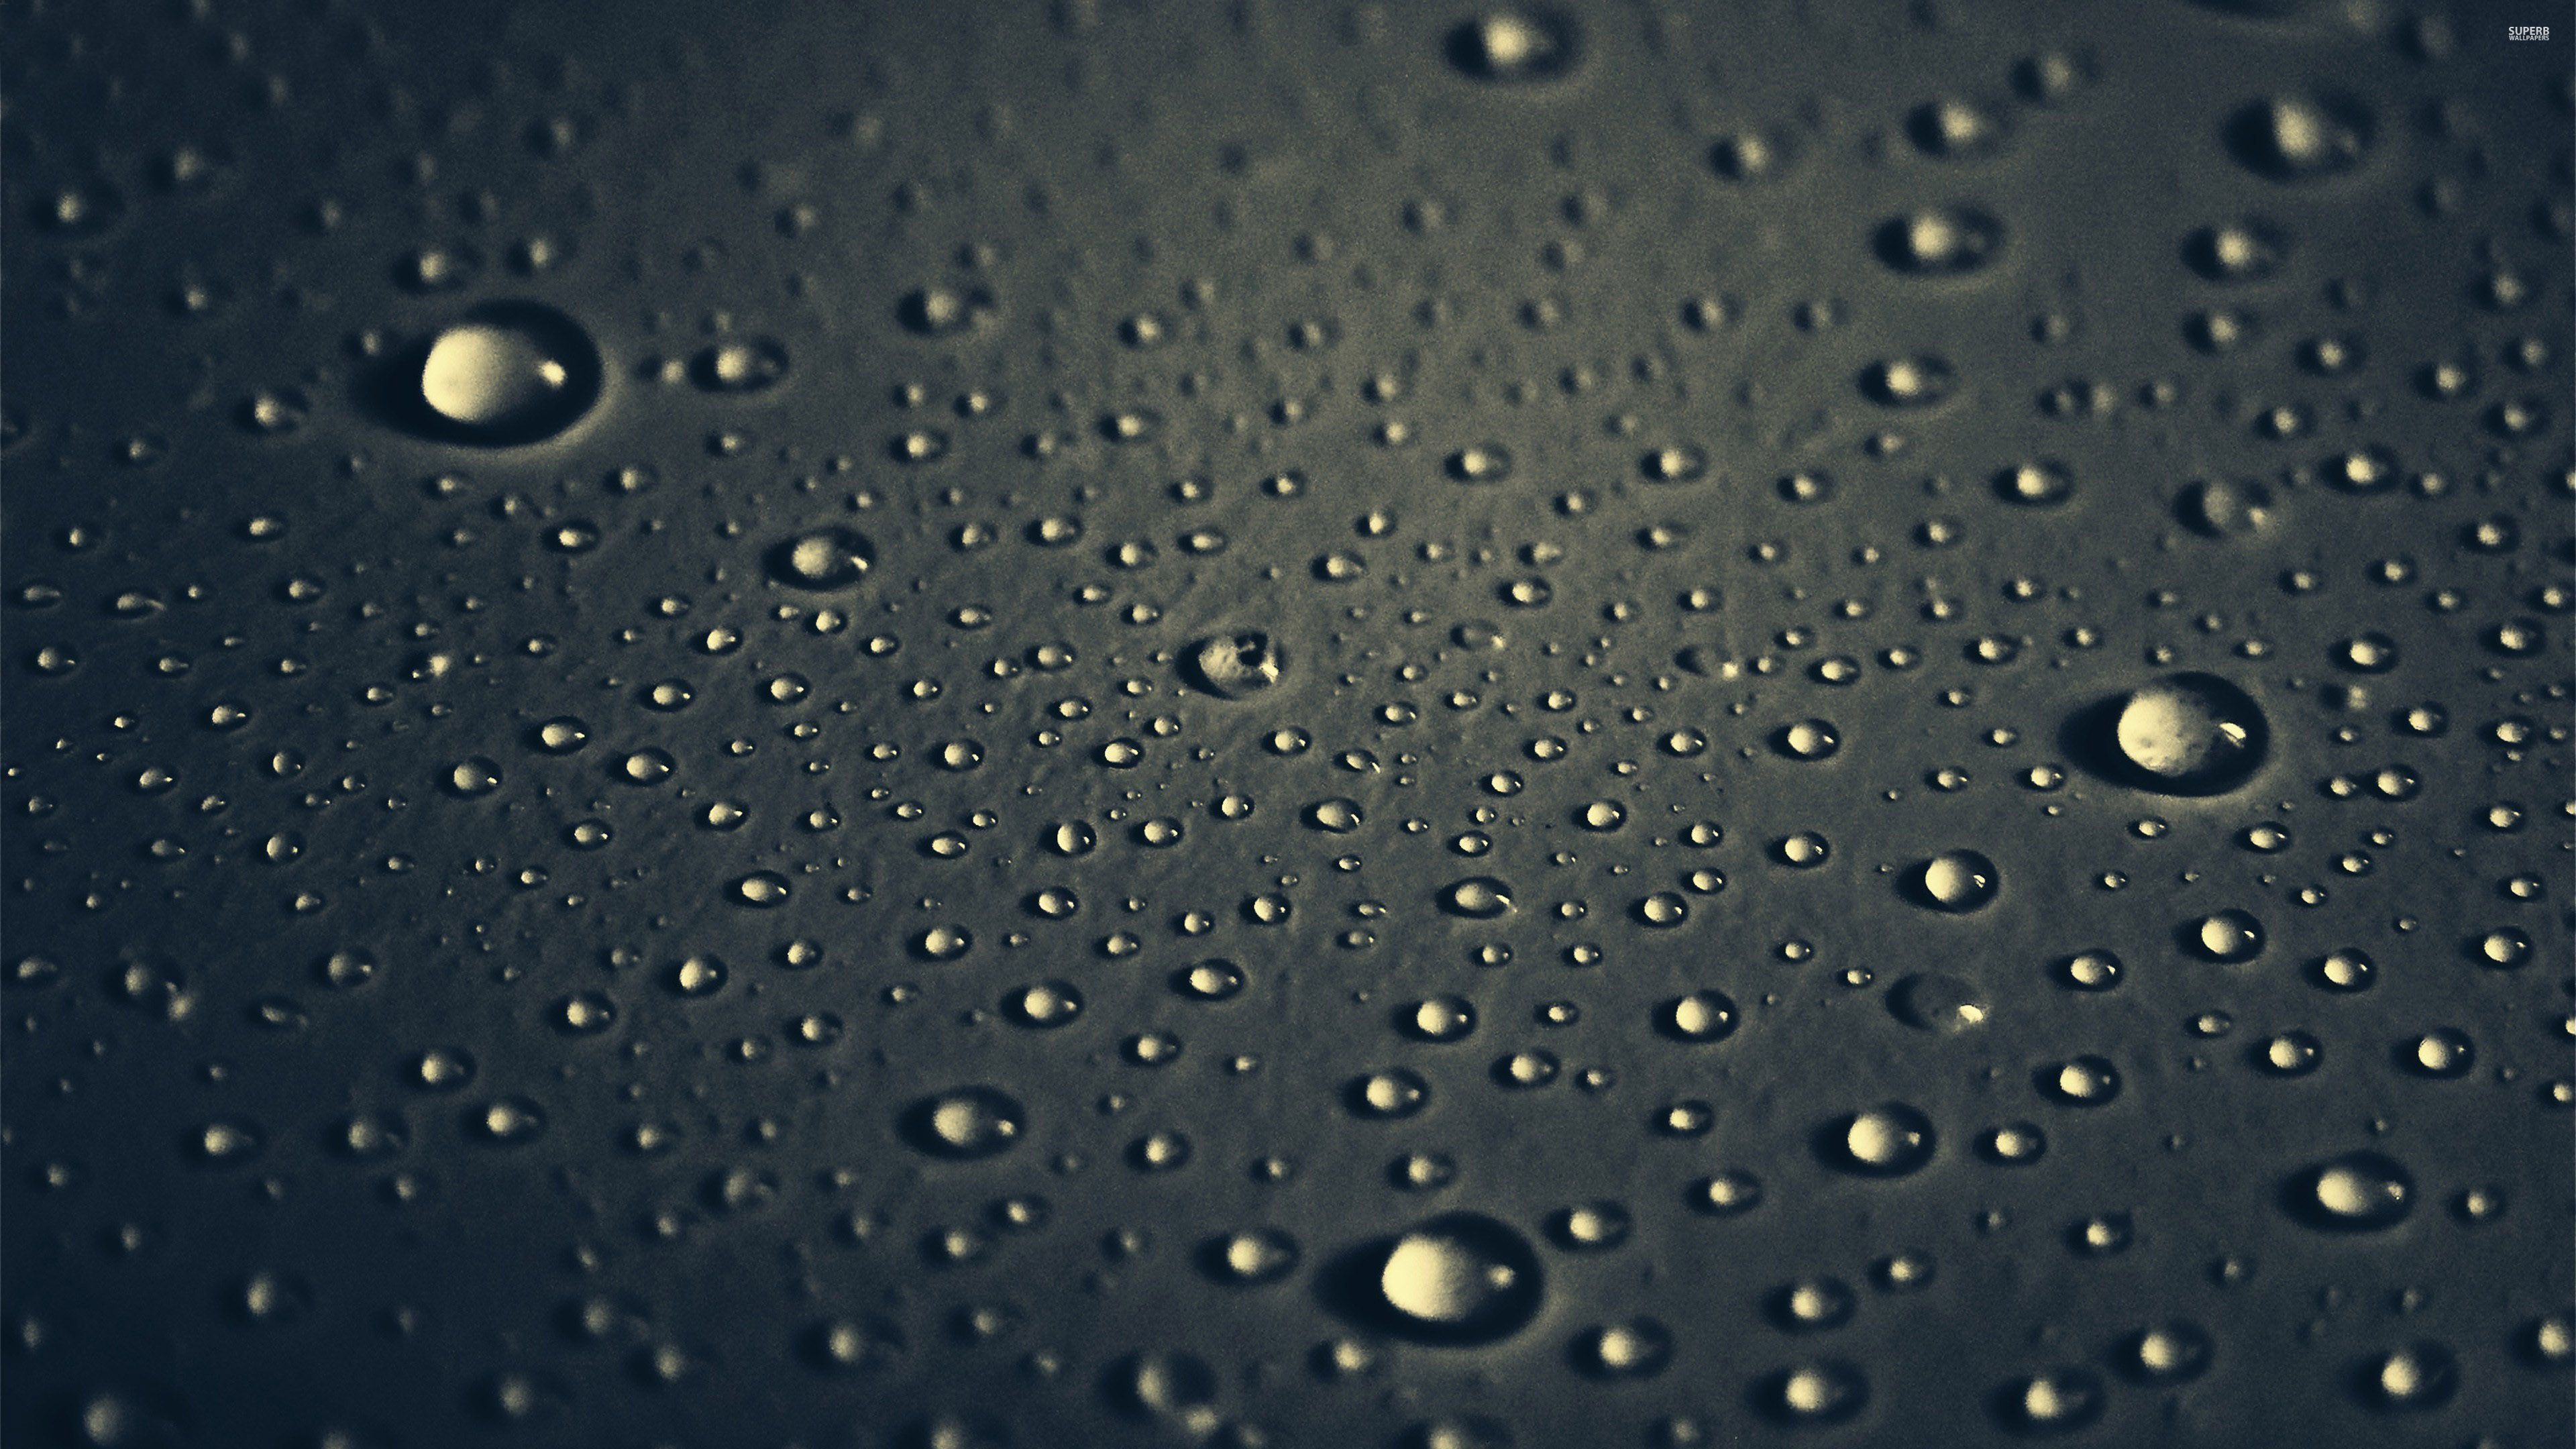 Water drops wallpaper 3840x2160 jpg